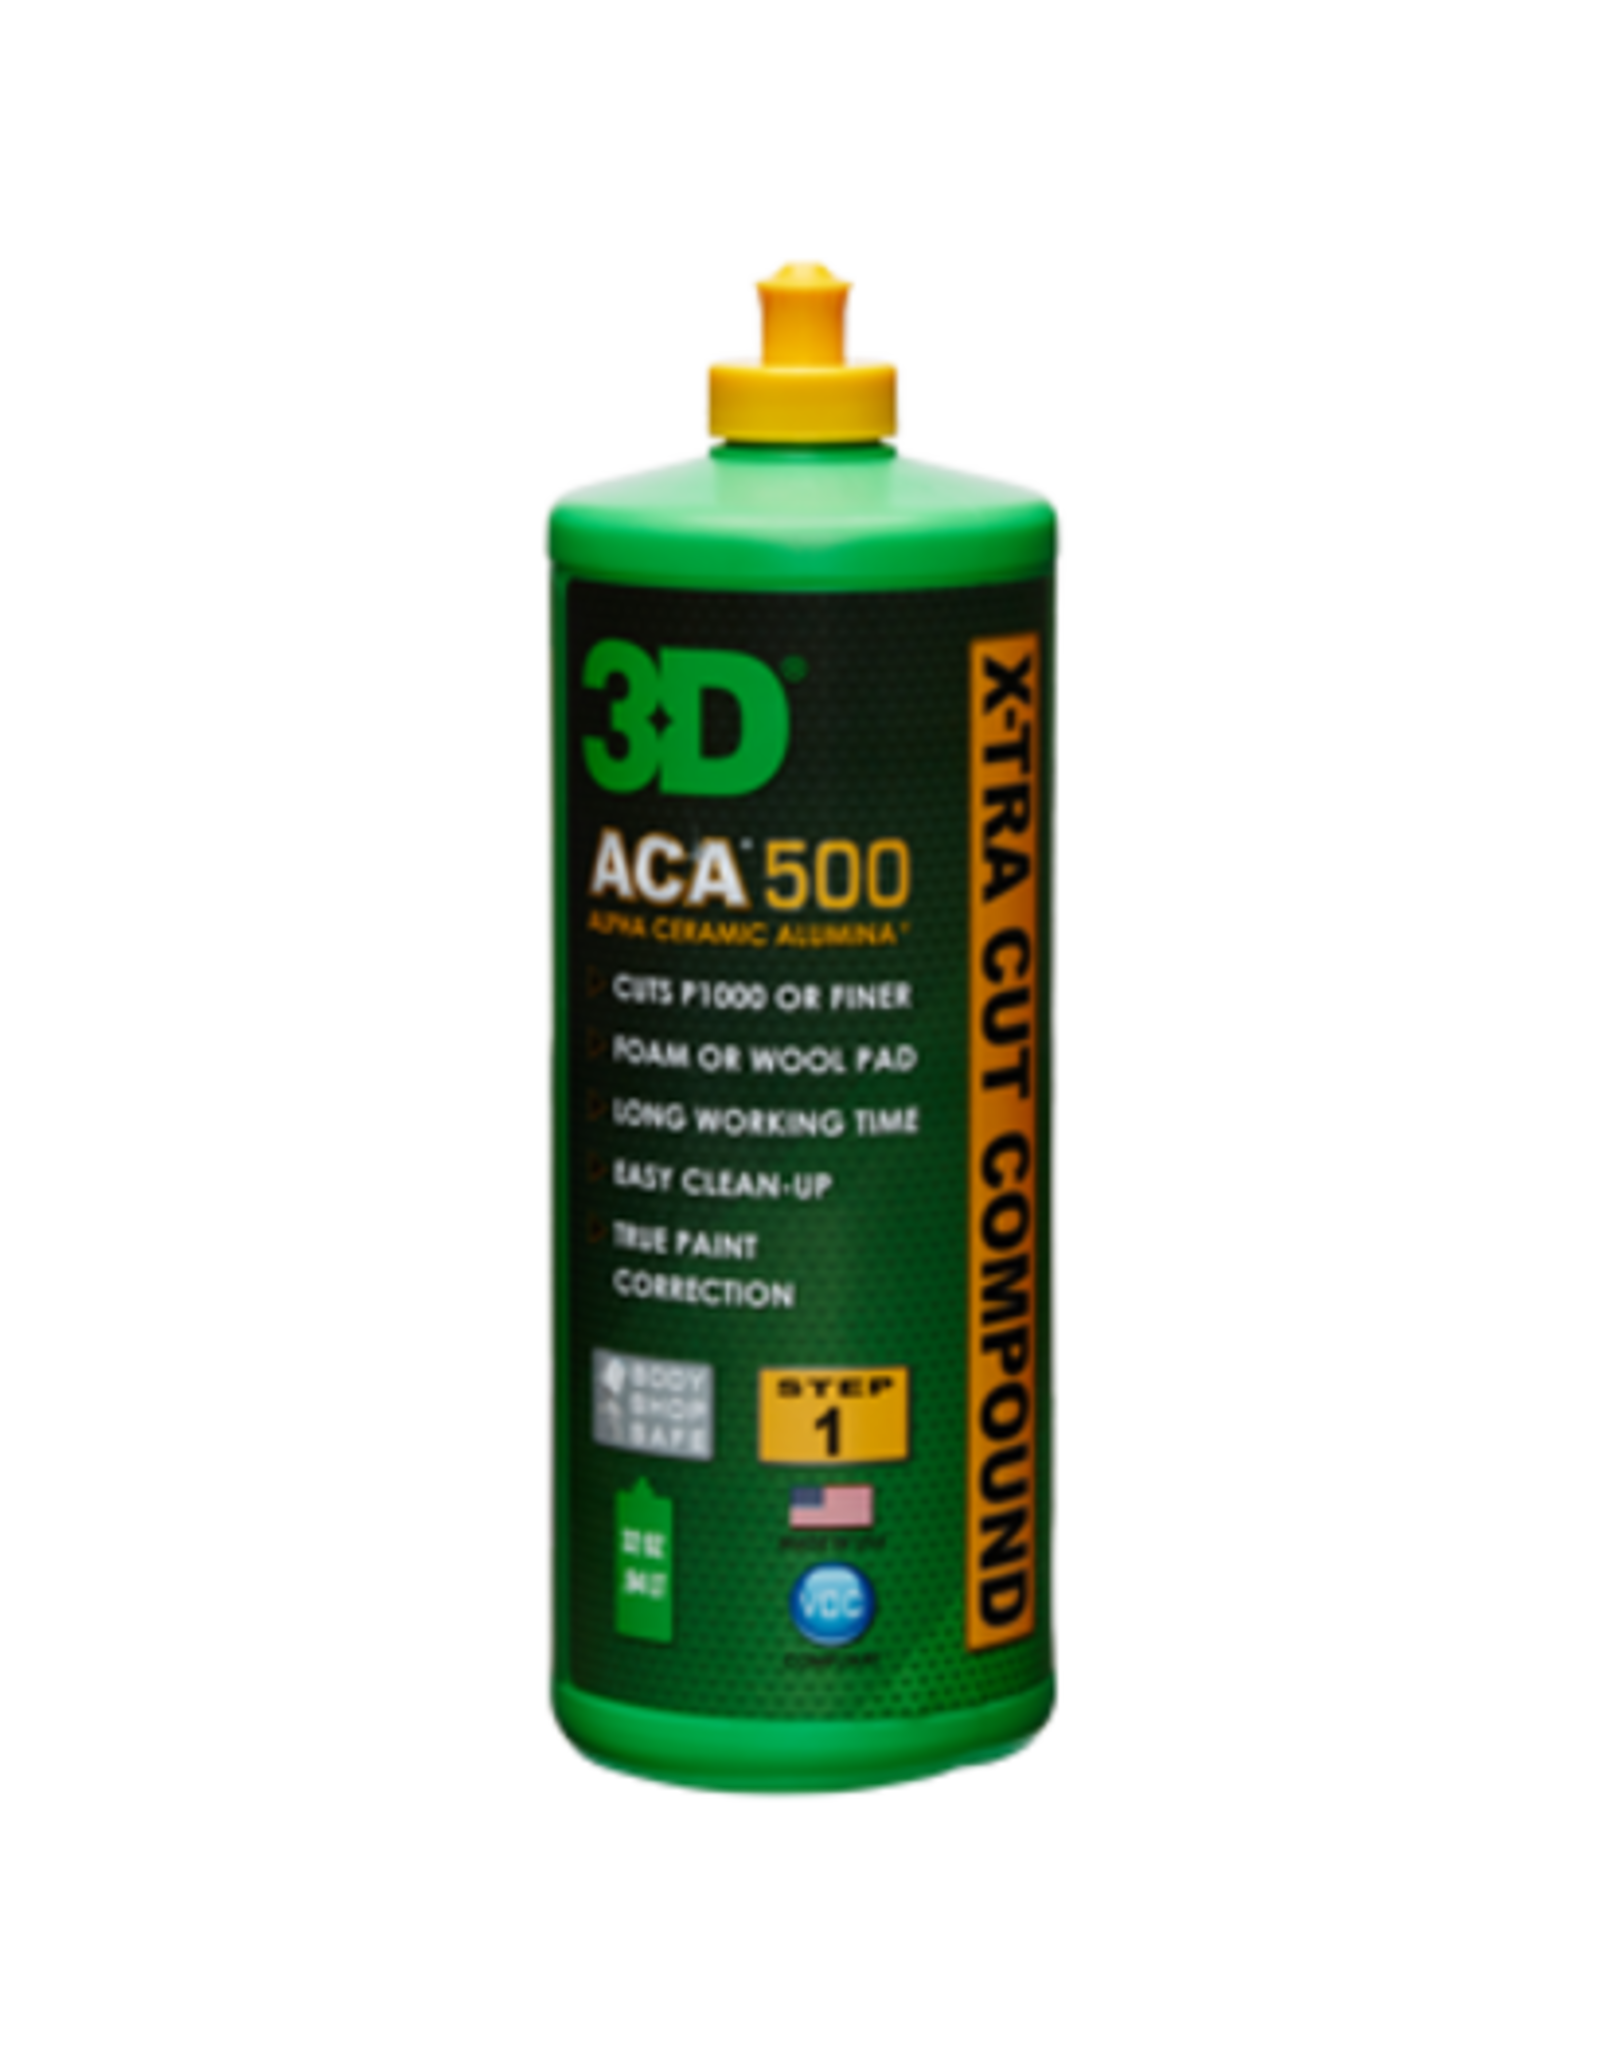 3D PRODUCTS 3D ACA X-TRA CUT Compound 500 - 32oz/946 ml fles